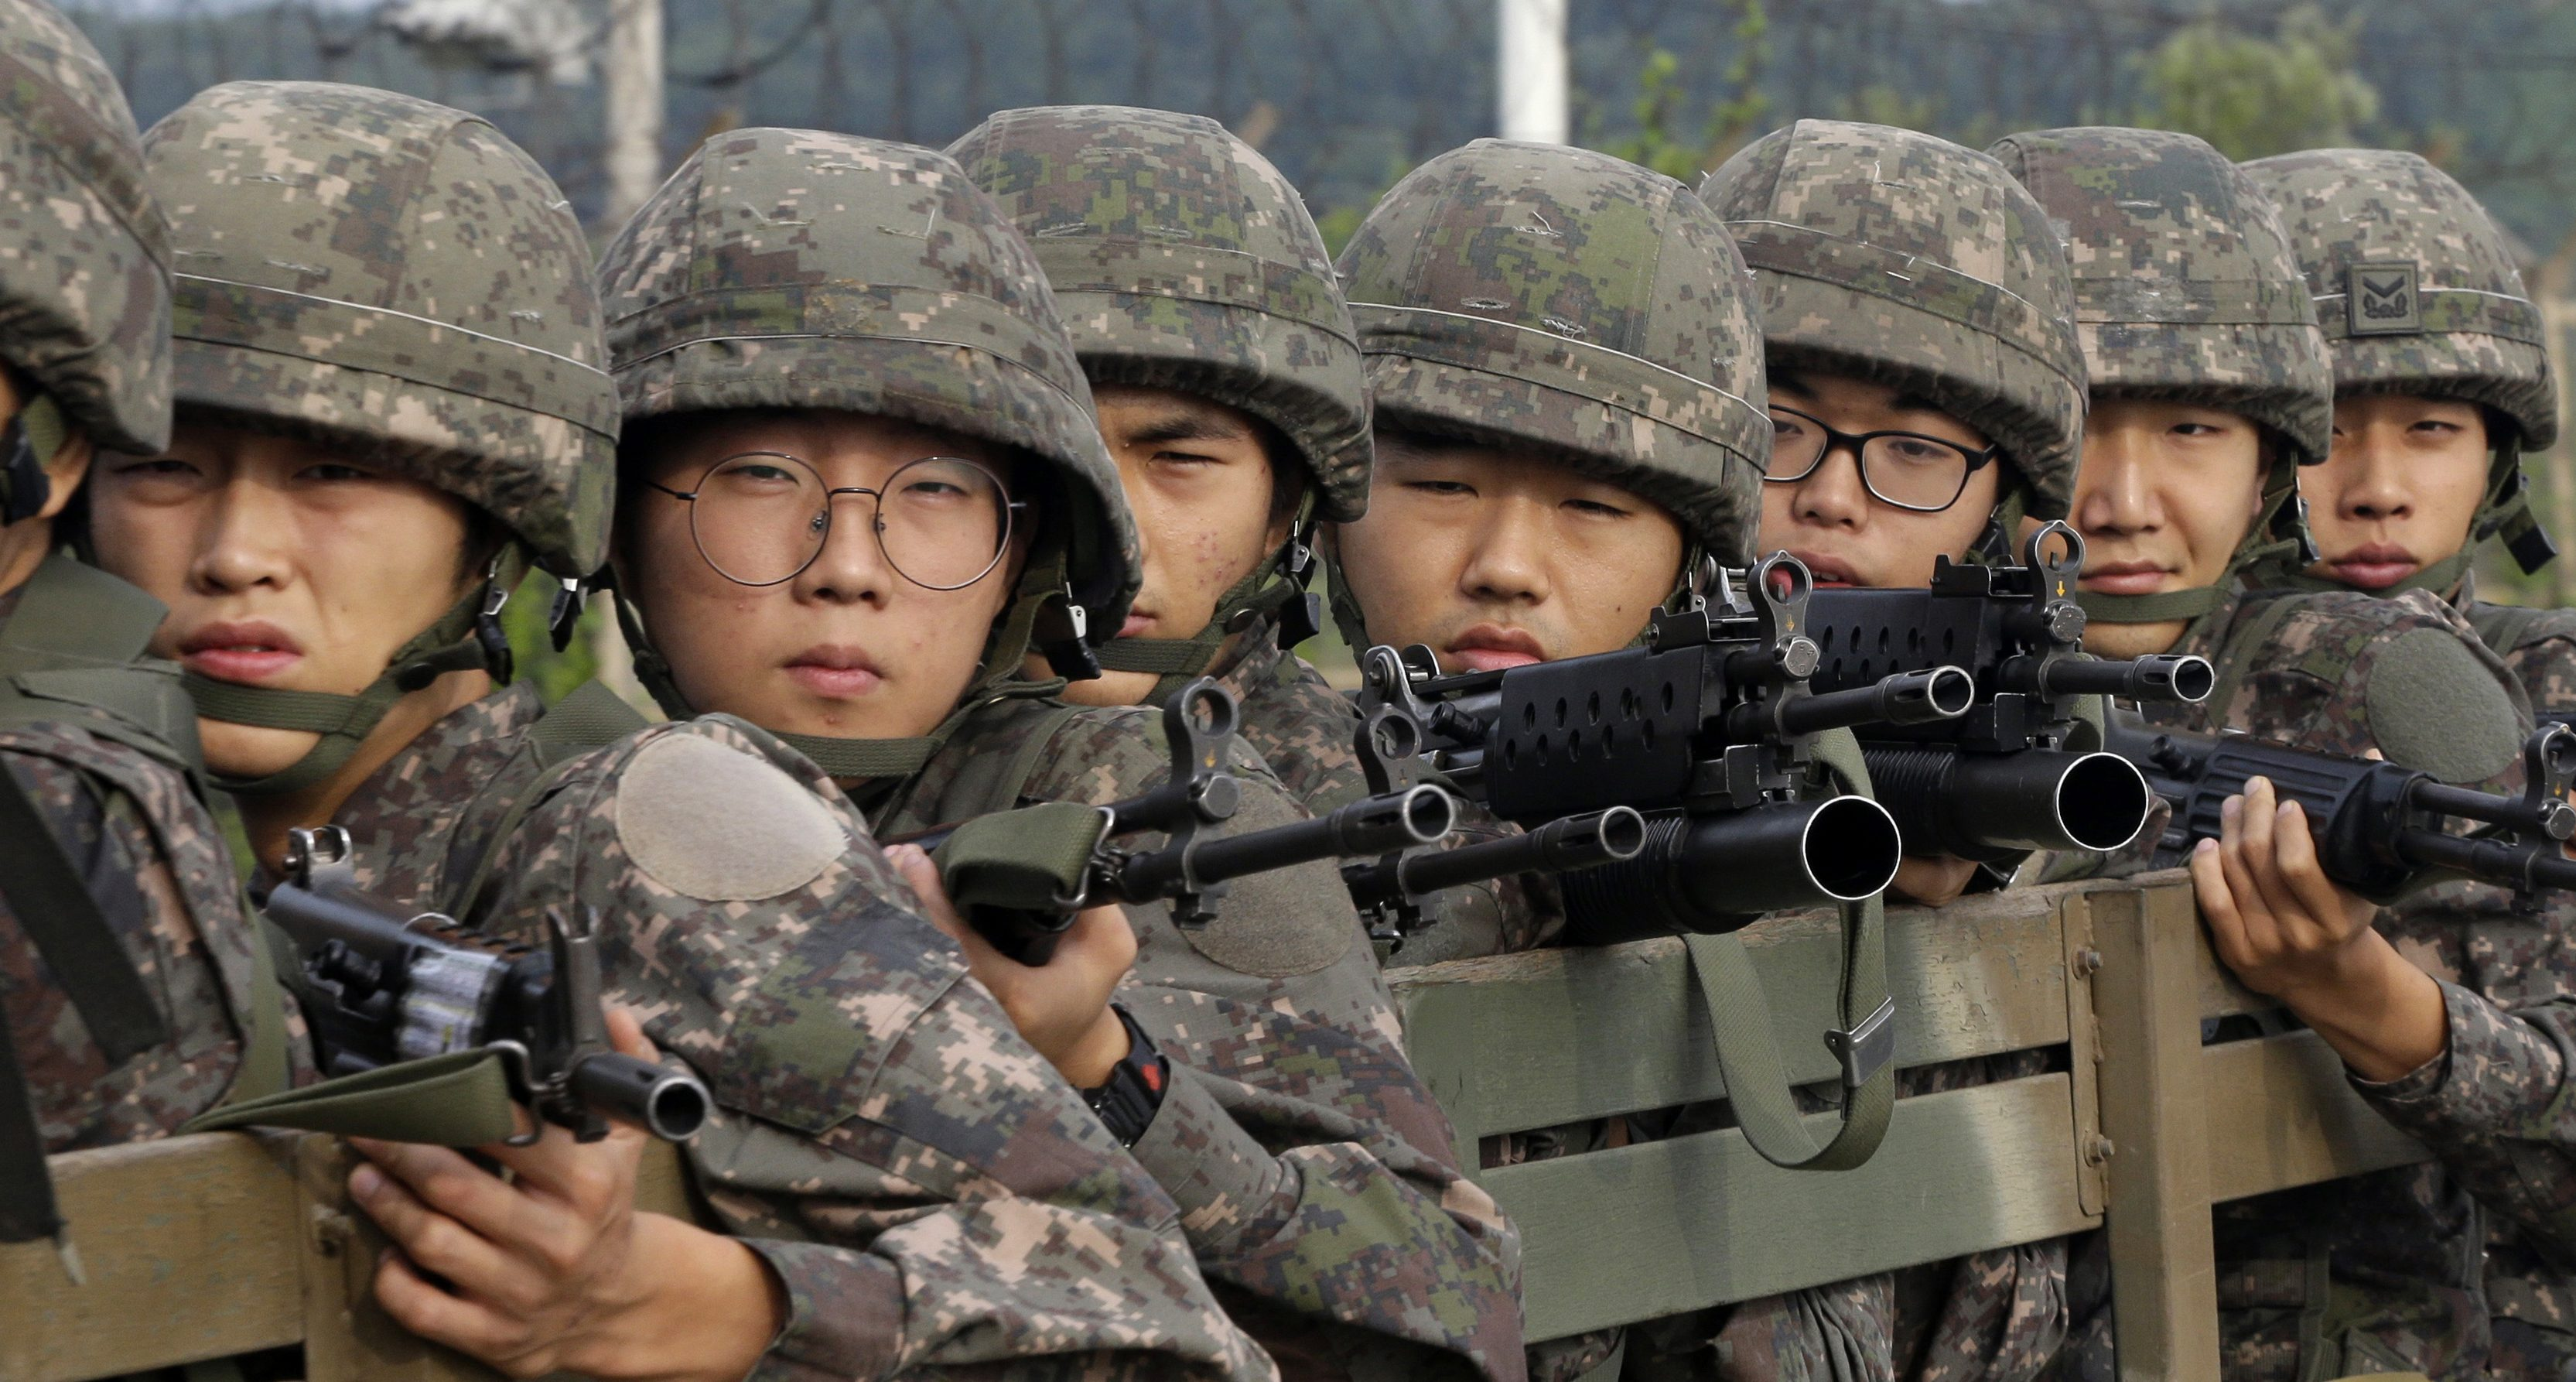 South Korean army soldiers ride on a truck in Paju, south of the demilitarized zone that divides the two Koreas, South Korea, Monday, Aug. 24, 2015.